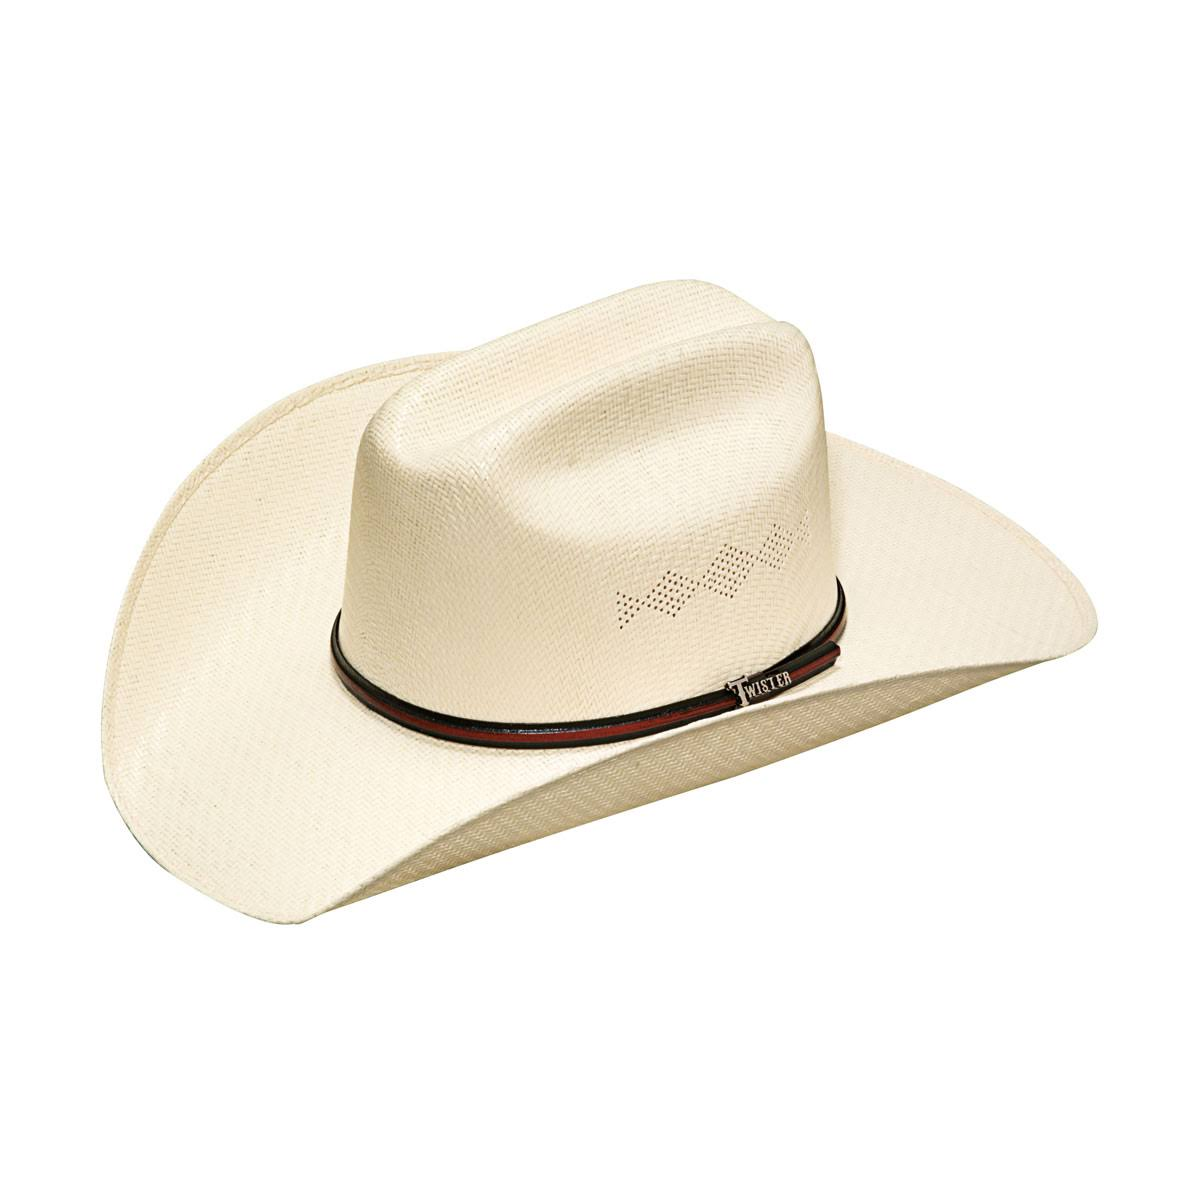 Twister 5x Shantung Double S Straw Cowboy Hats - Natural, 7 1/8""